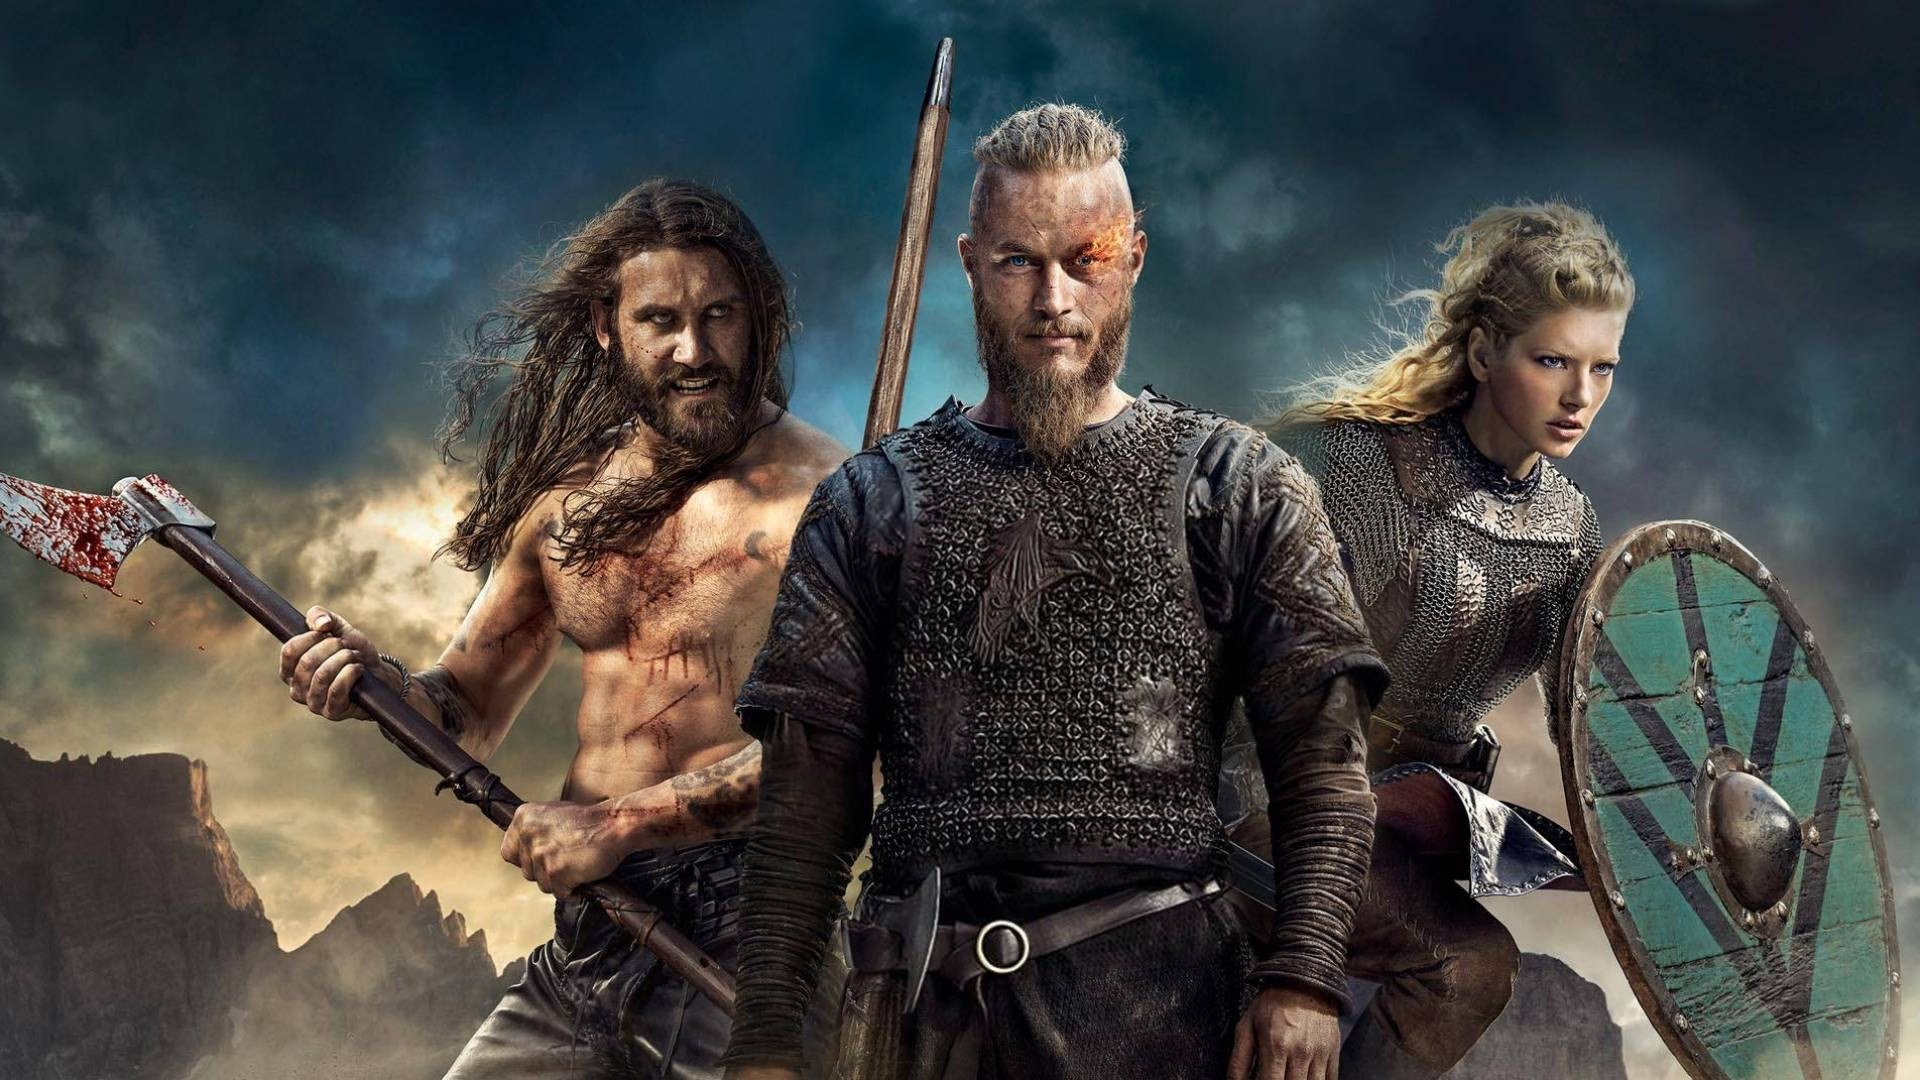 1920x1080-px-high-resolution-widescreen-vikings-by-Heaven-Mason-for-pocketfullofgrace-wallpaper-wp380887